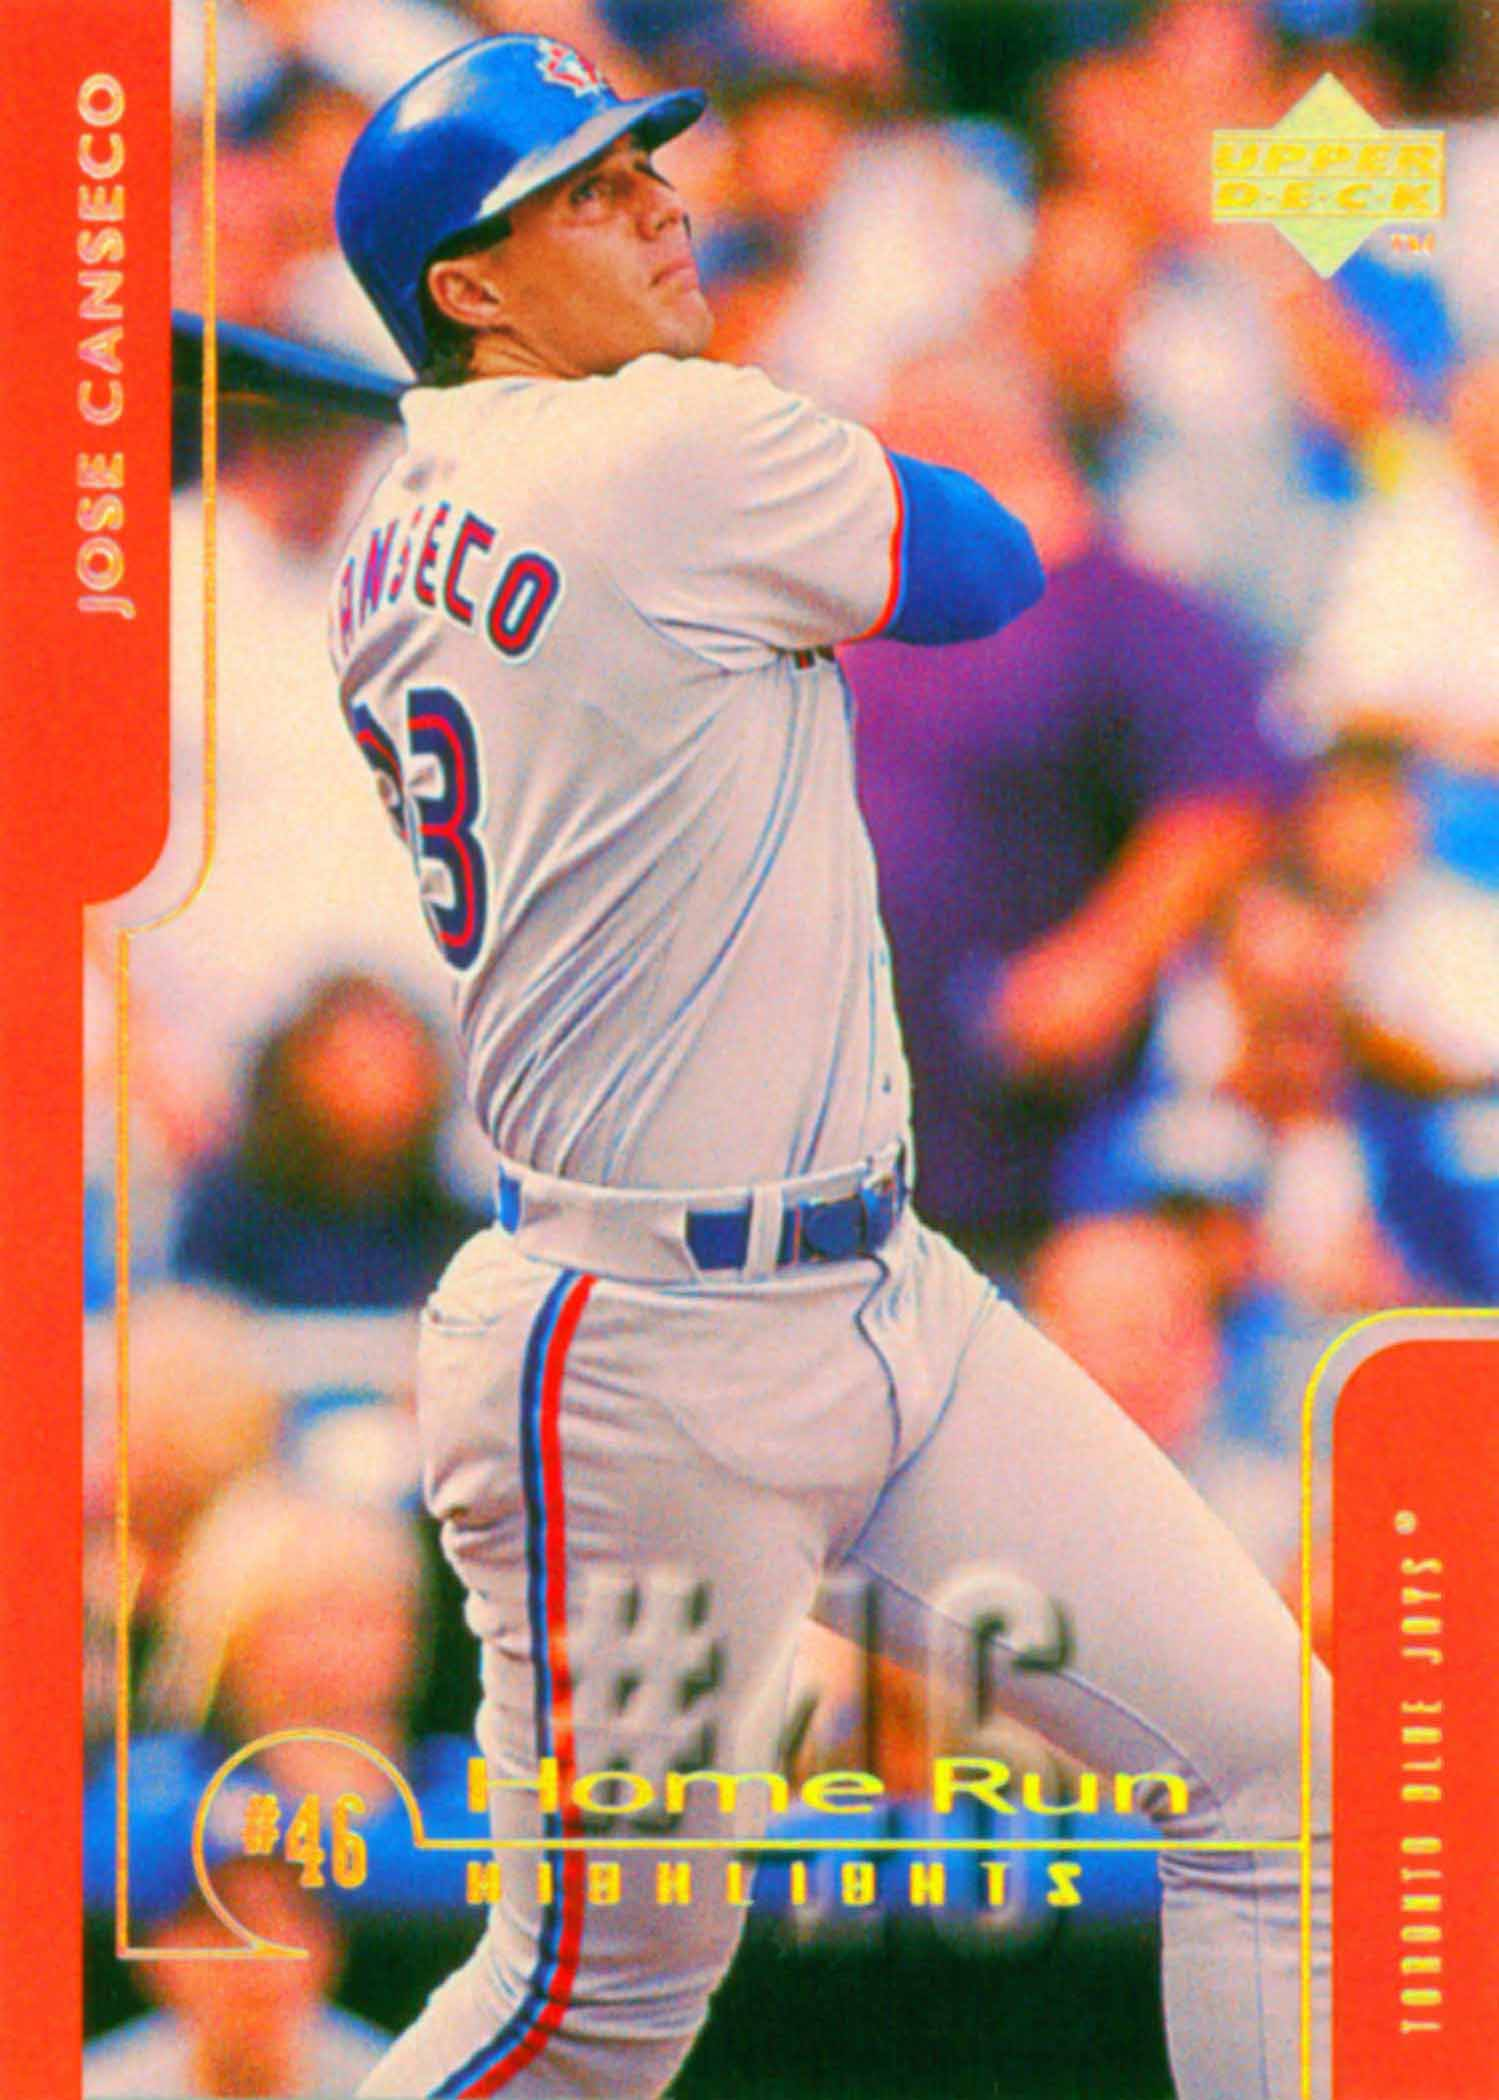 1999 Upper Deck Challengers for 70 Challengers Edition Home Run Highlights